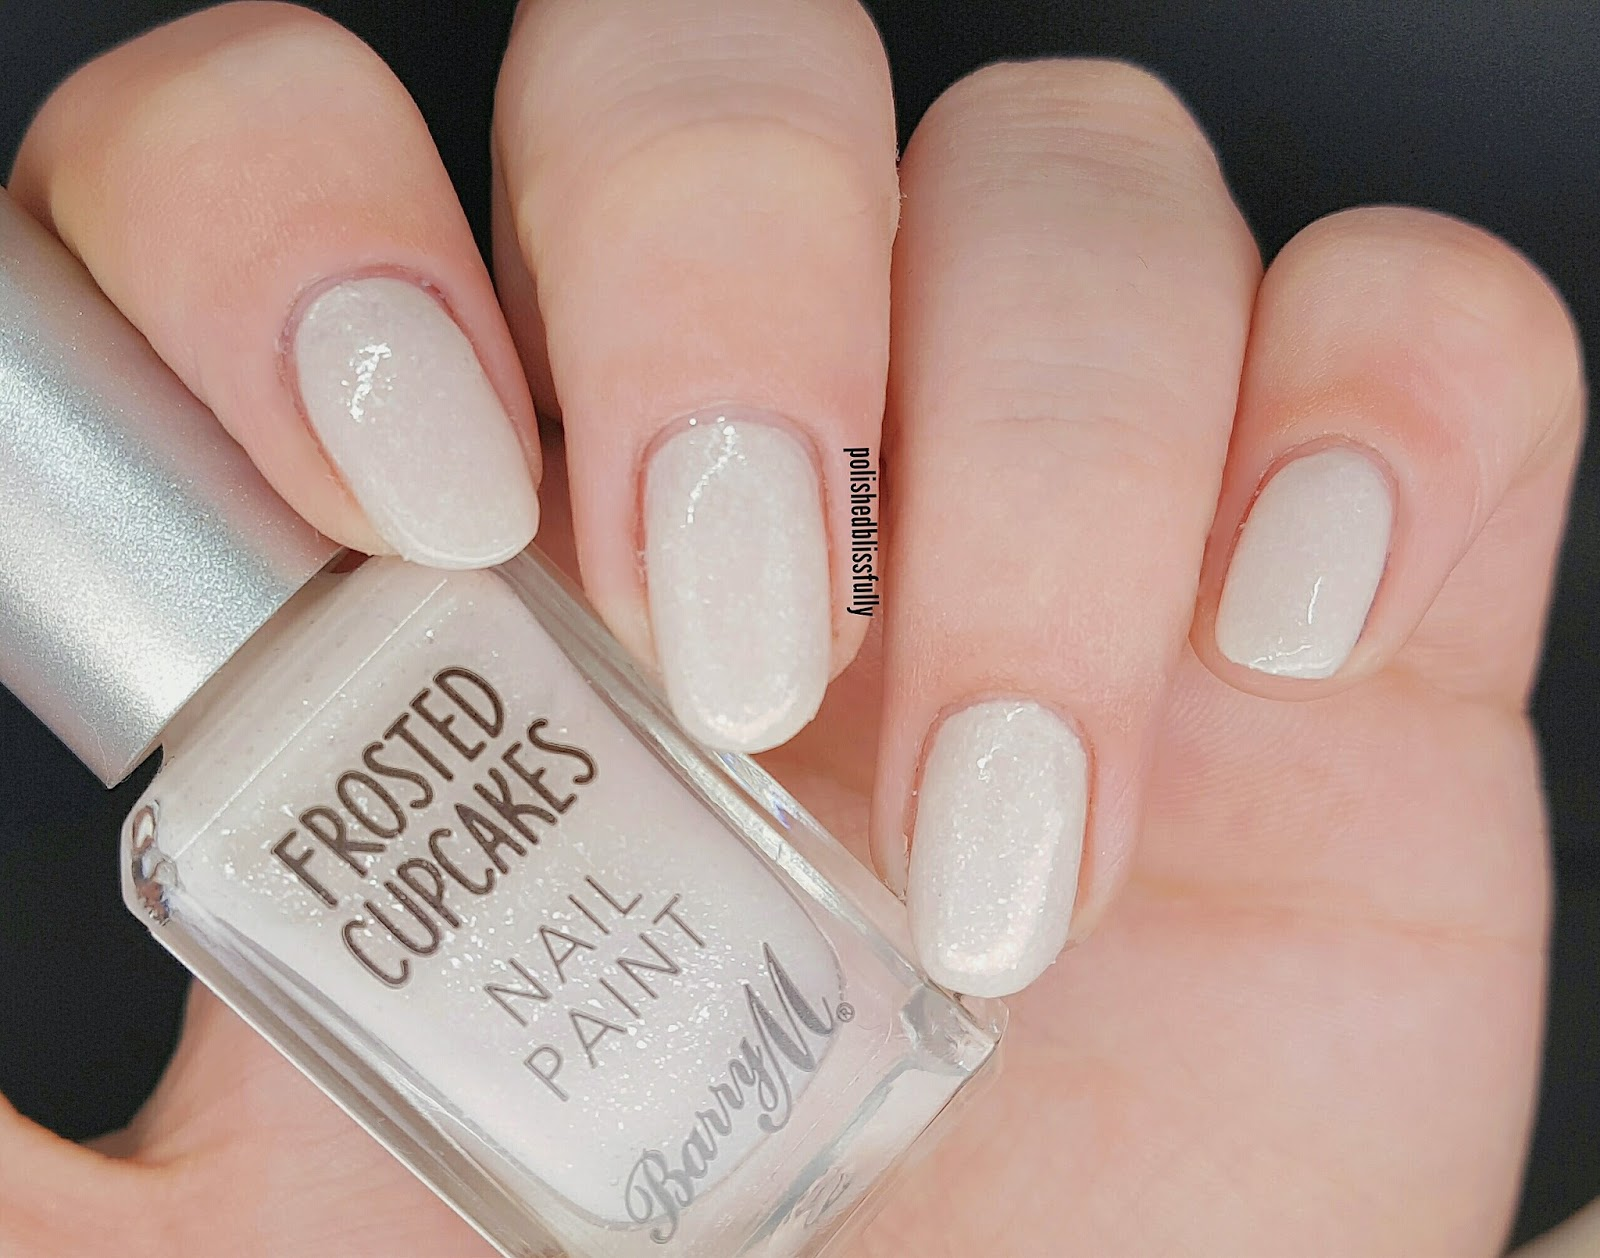 Barry M Frosted Cupcake Nail Polish - Creative Touch